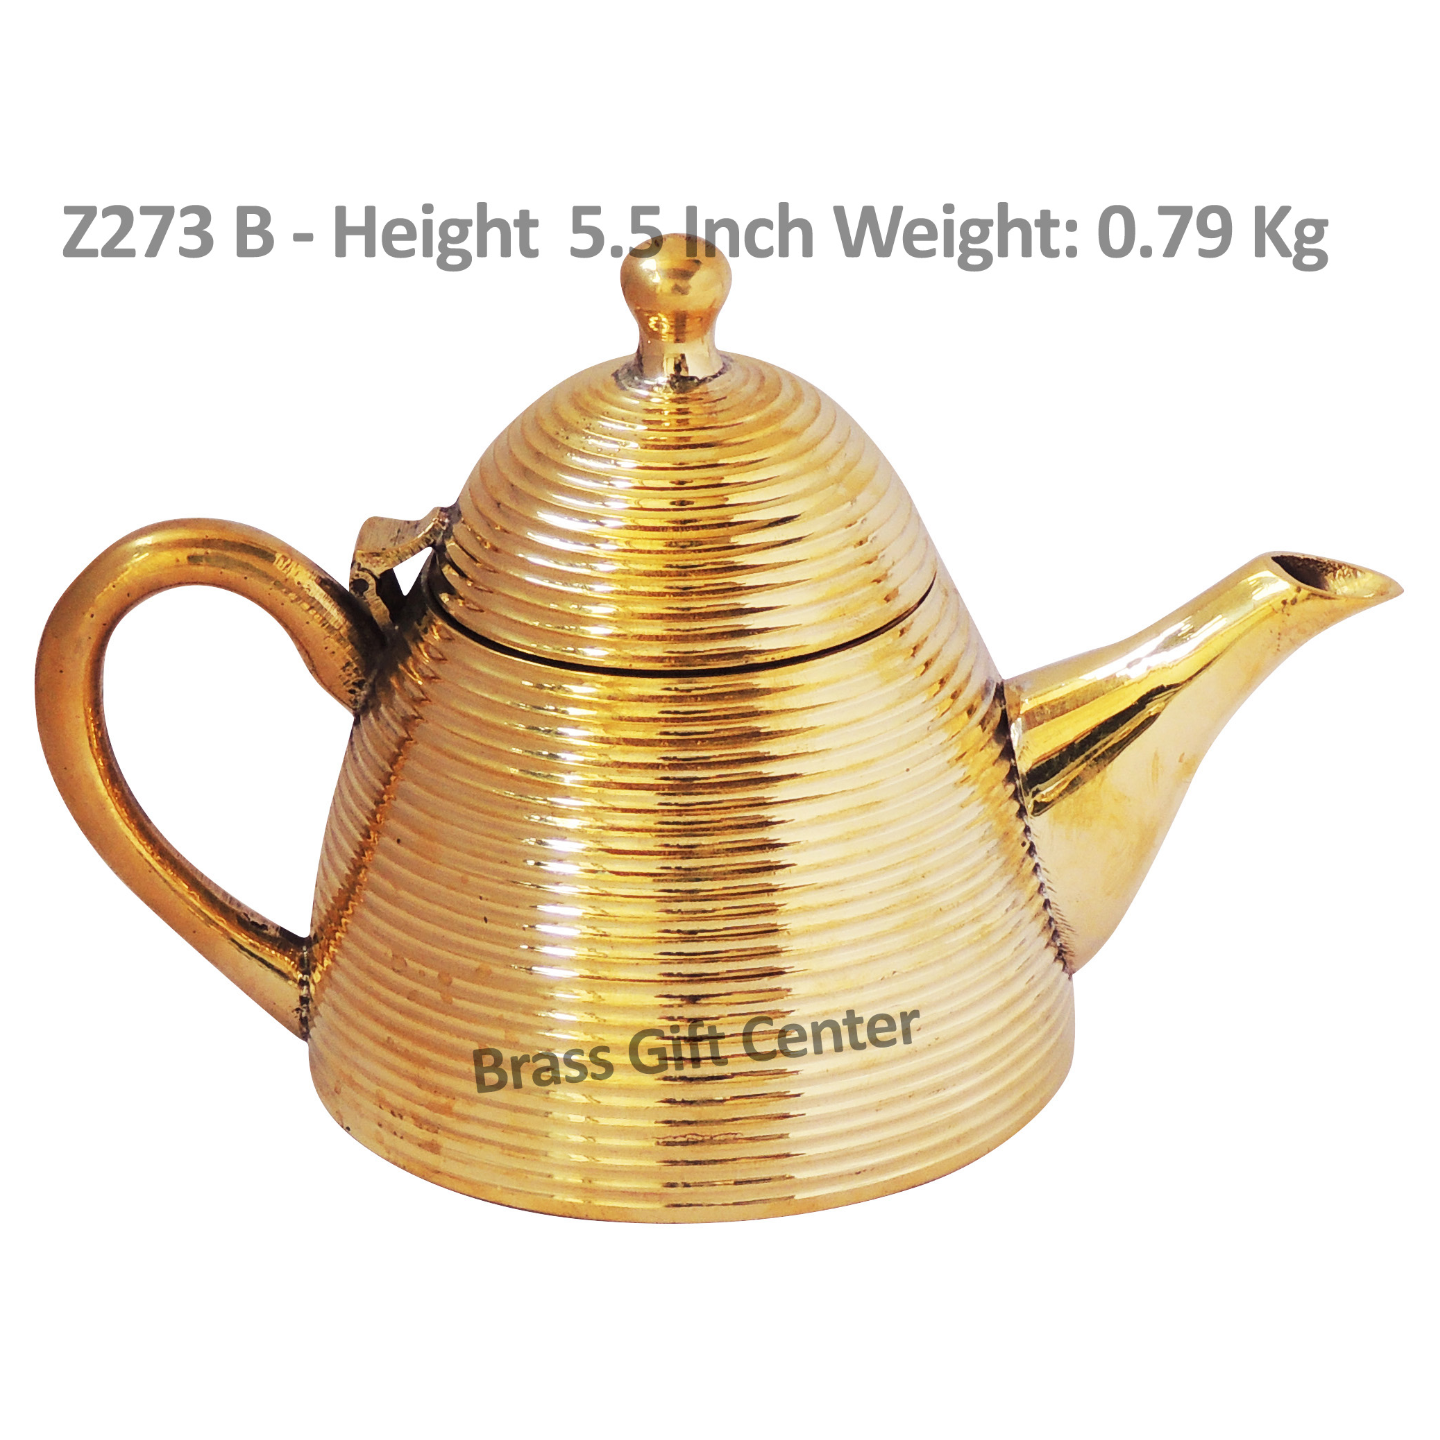 Brass Tea Pot Kettle 450 Ml -  8*4.5*5.5 Inch  (Z273 B)